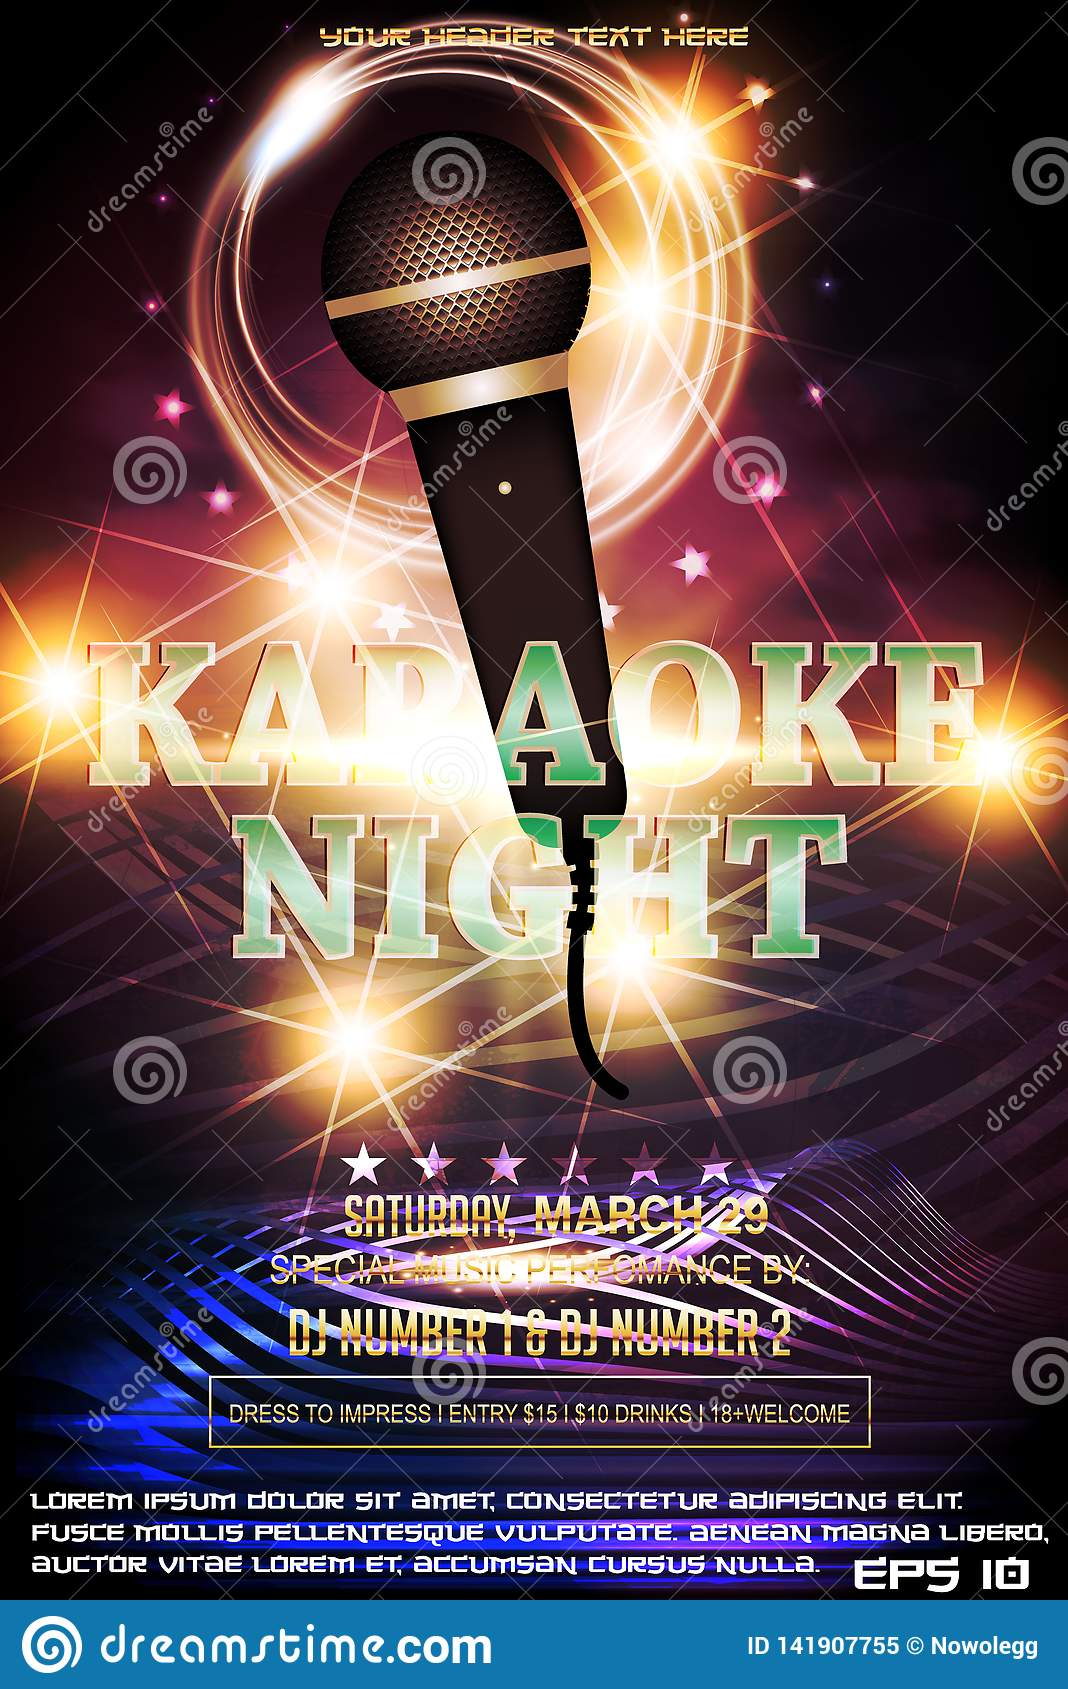 Karaoke Night Party Invitation Poster Design Template Stock Vector